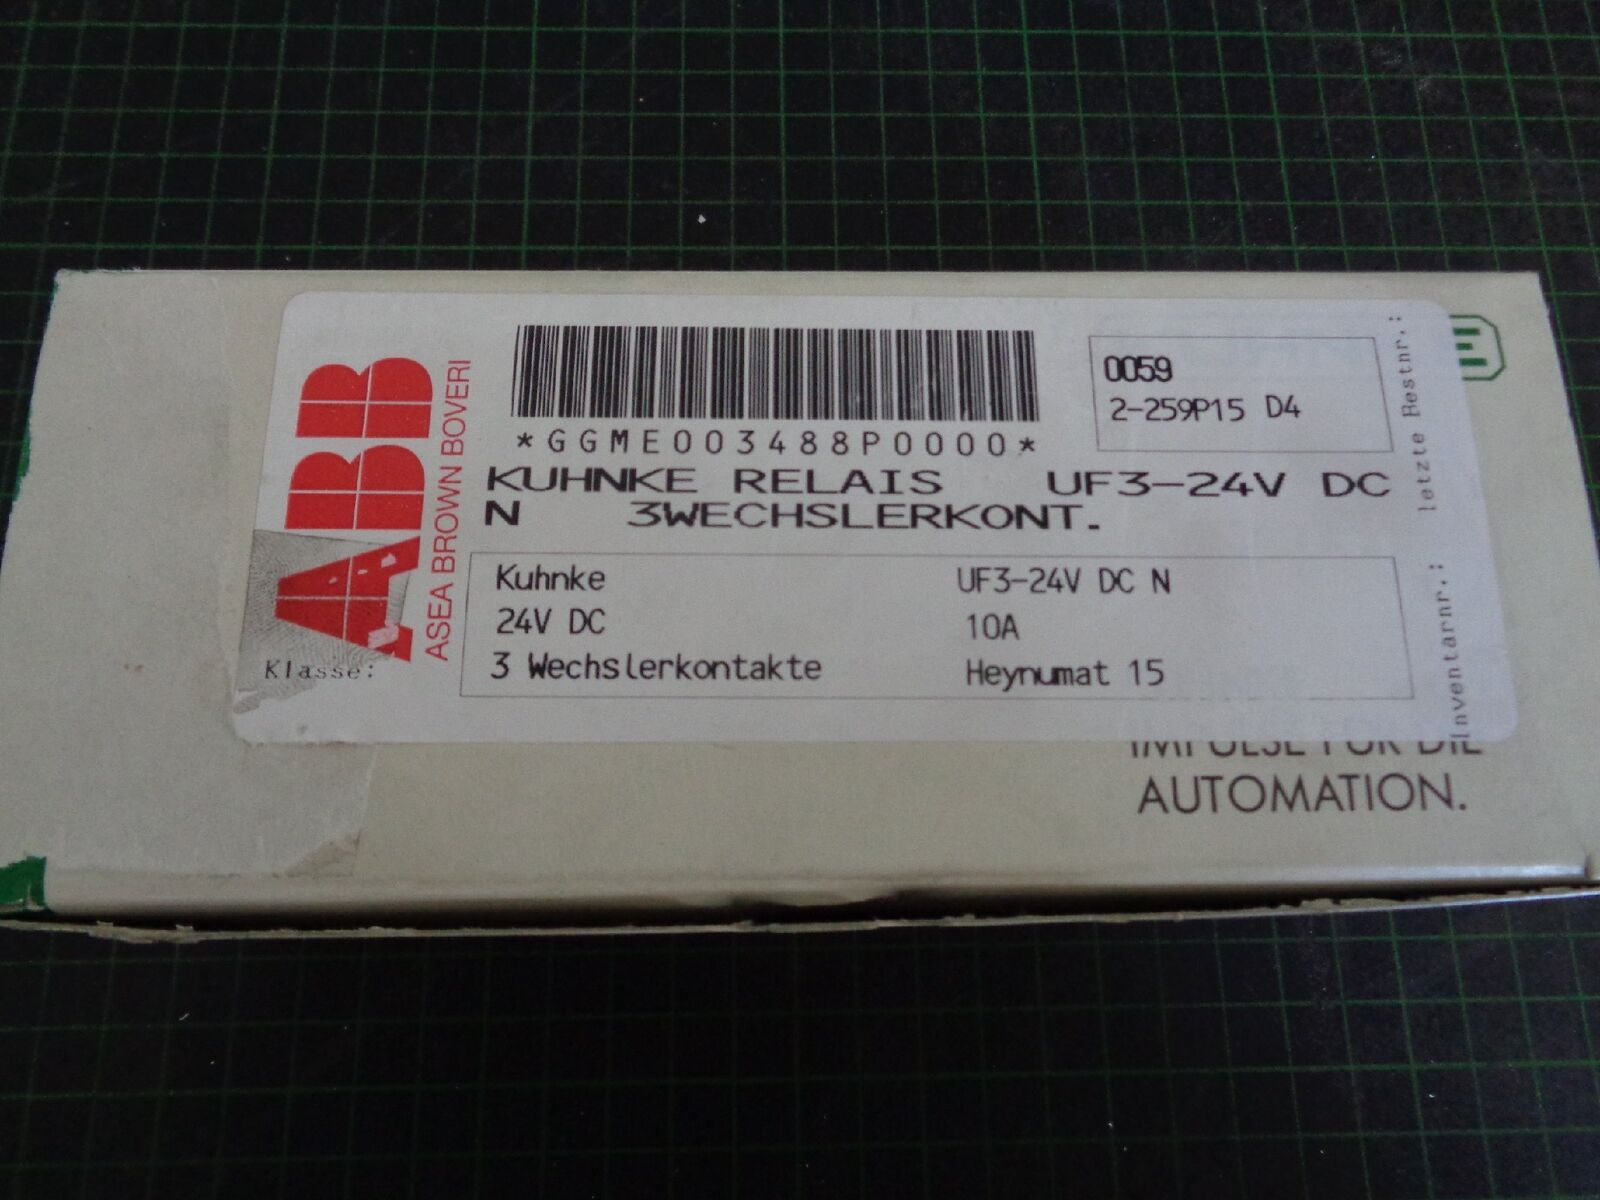 10 x KUHNKE Relais uf3-24v DC N; 3 Changeur Changeur 3 contacts bf0272